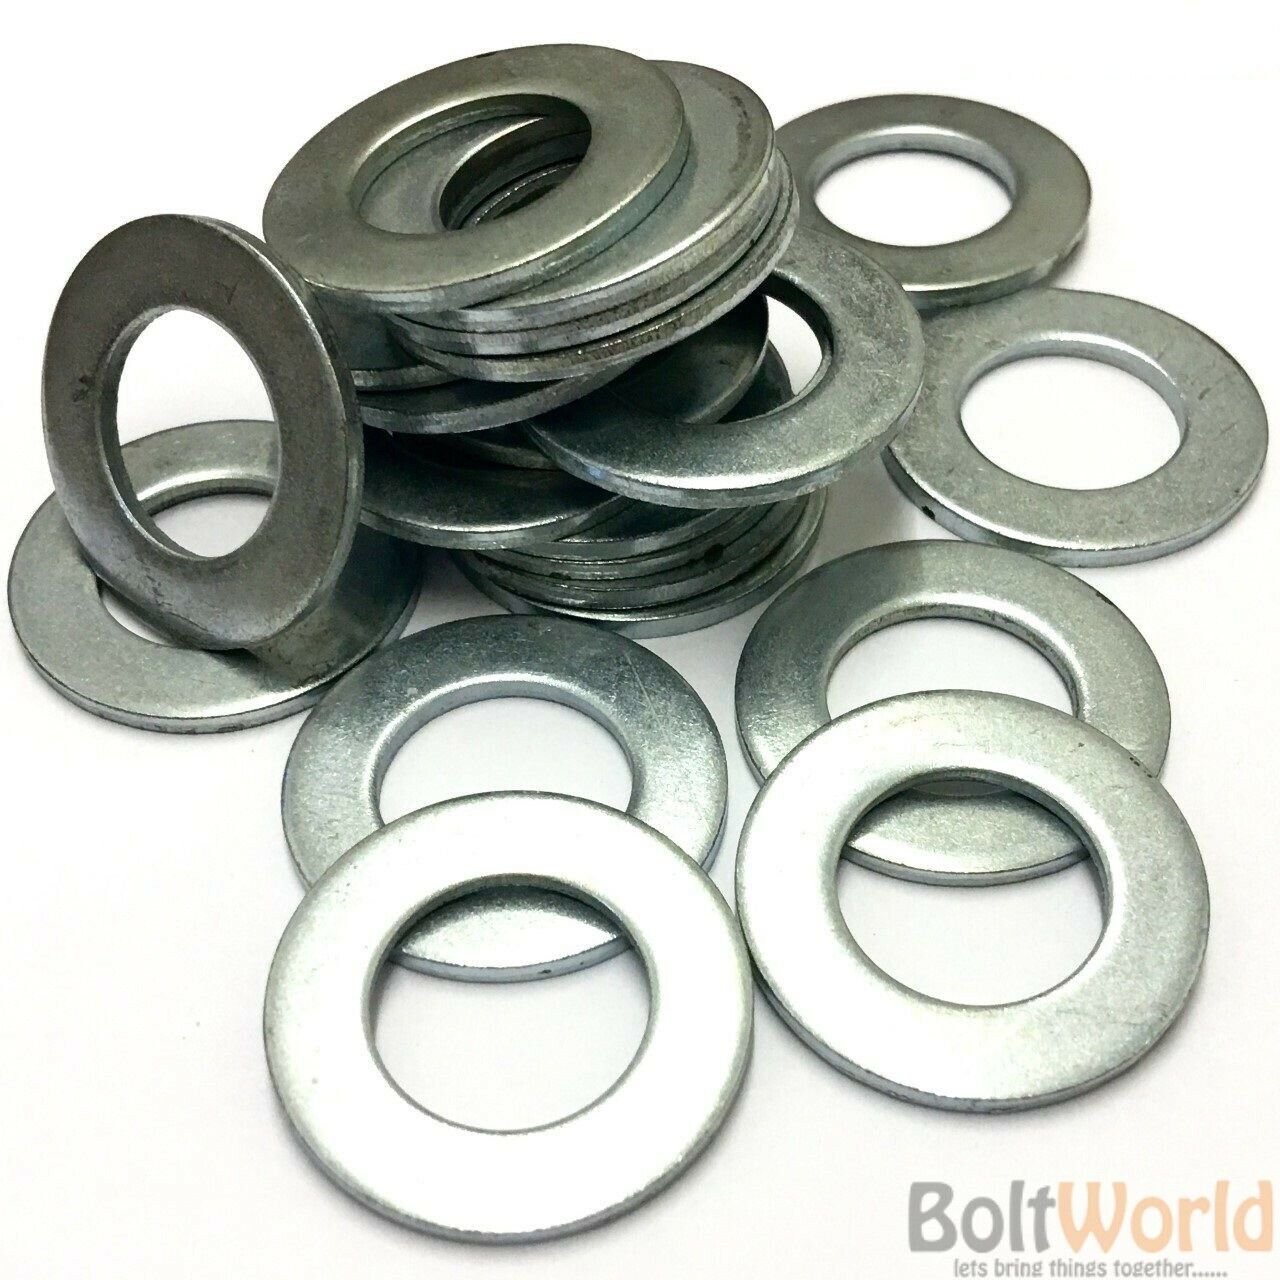 M5 M6 M8 M10 M12 M14 M16 M20 M24 FORM B ZINC PLATED WASHERS BZP BRIGHT BS43200